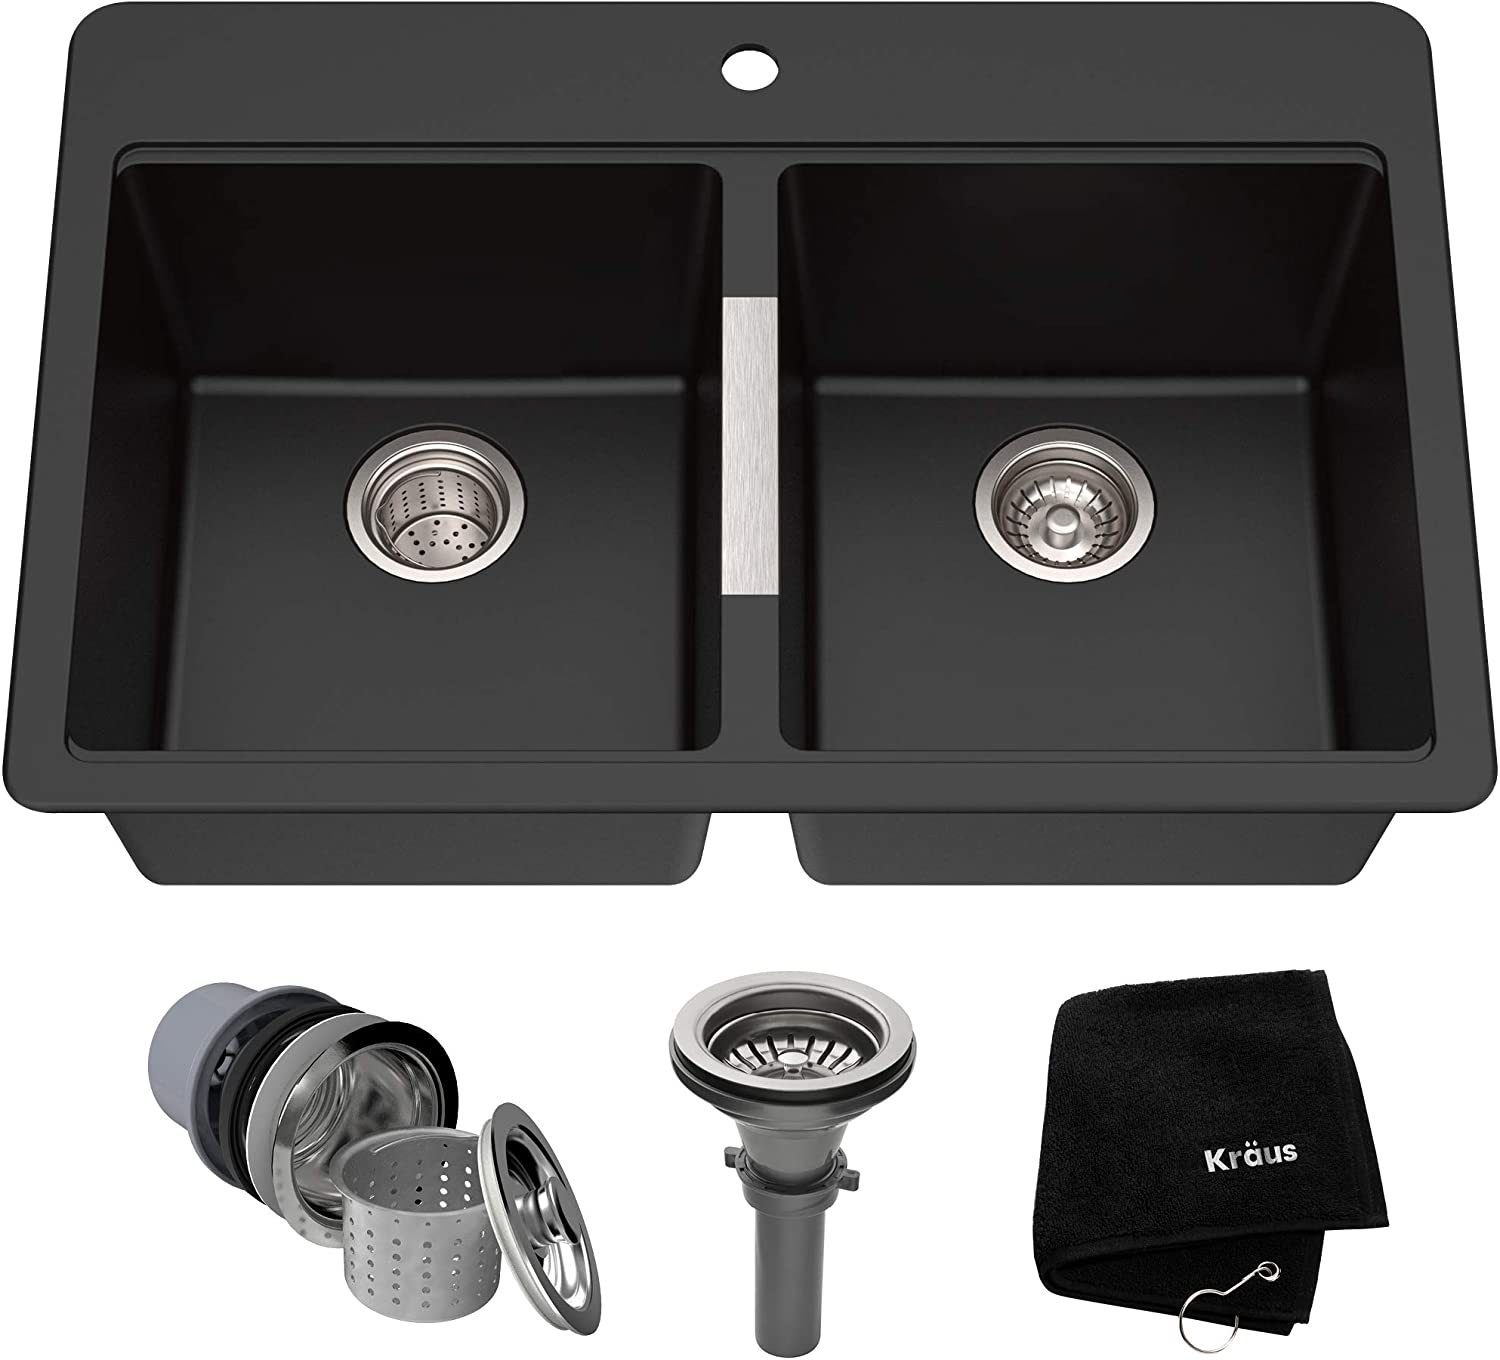 best granite sink: Kraus KGD-433B 33 1/2-inch Onyx Granite Kitchen Sink